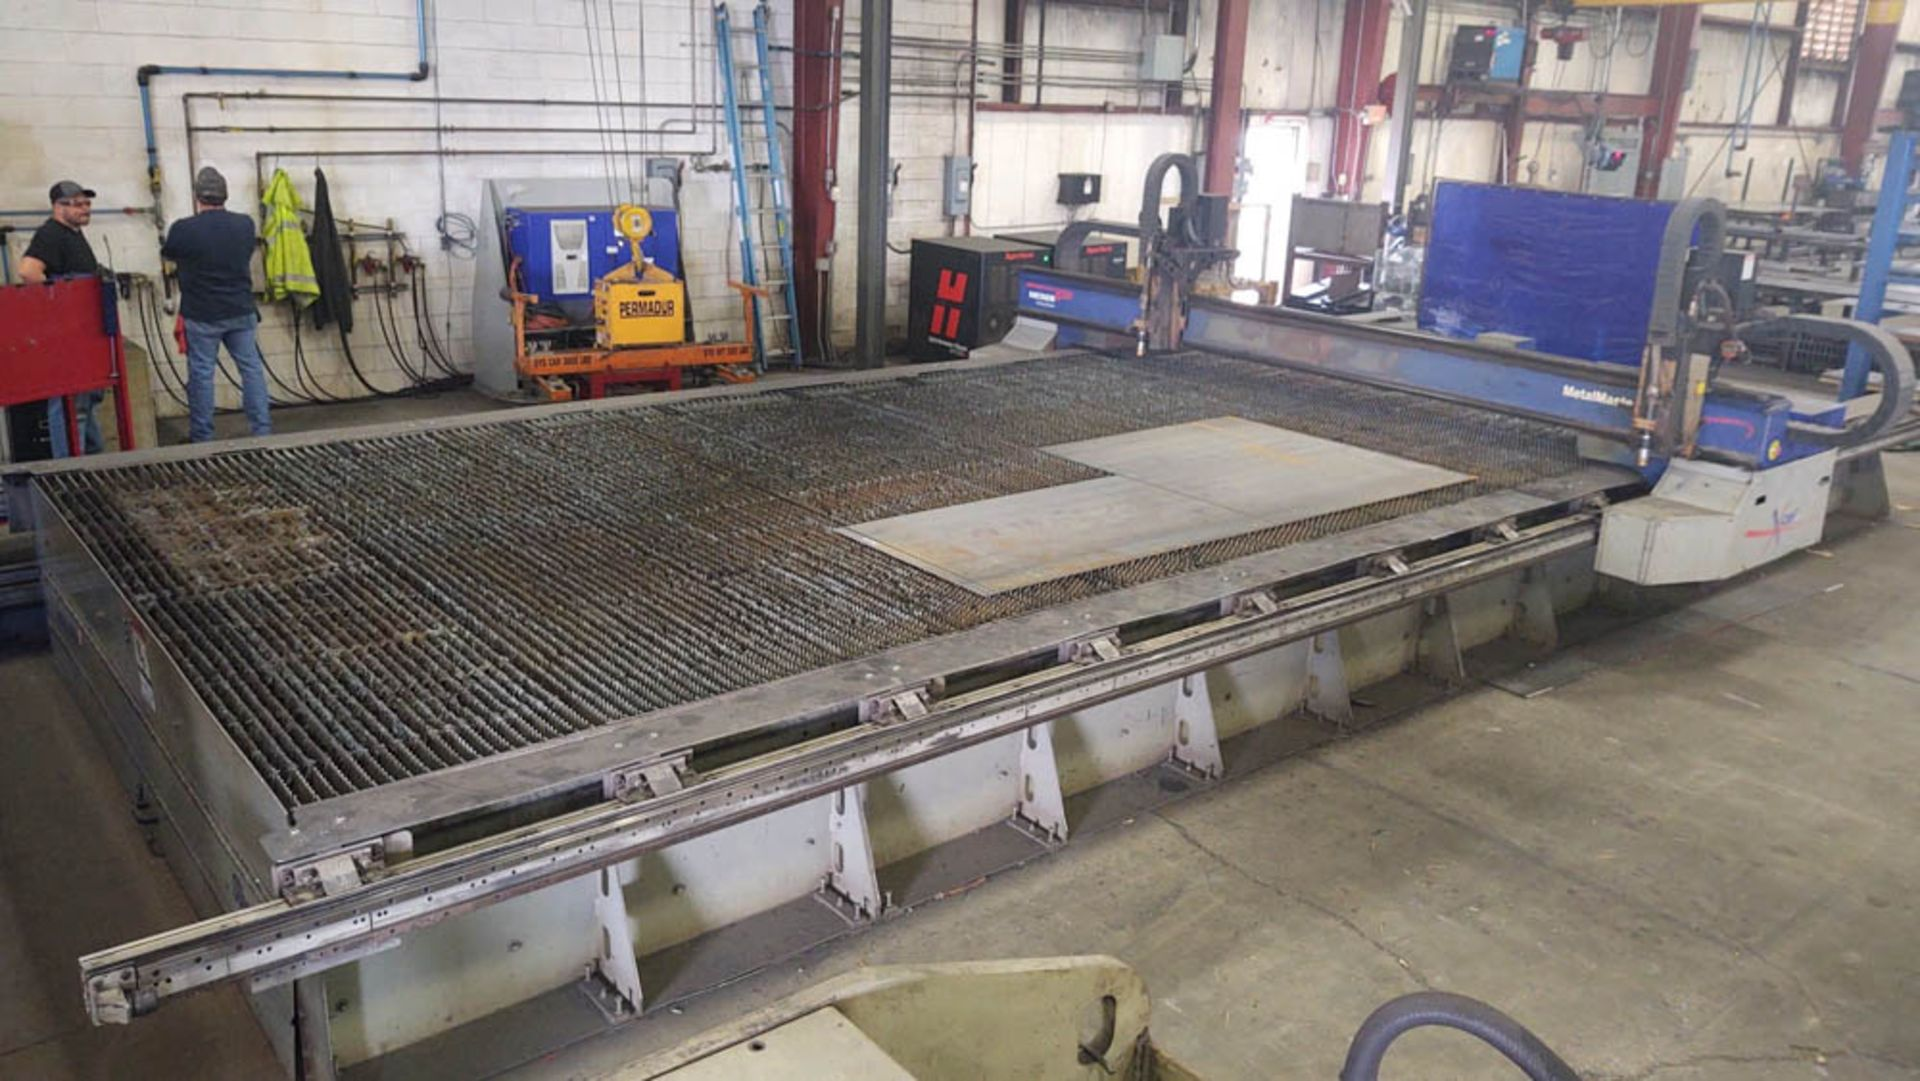 """2015 MESSER MDL. MMEXCEL HI-DEF CNC PLASMA CUTTING TABLE, [2] HEADS, 140"""" X 324"""" OVERALL TABLE SIZE, - Image 2 of 20"""